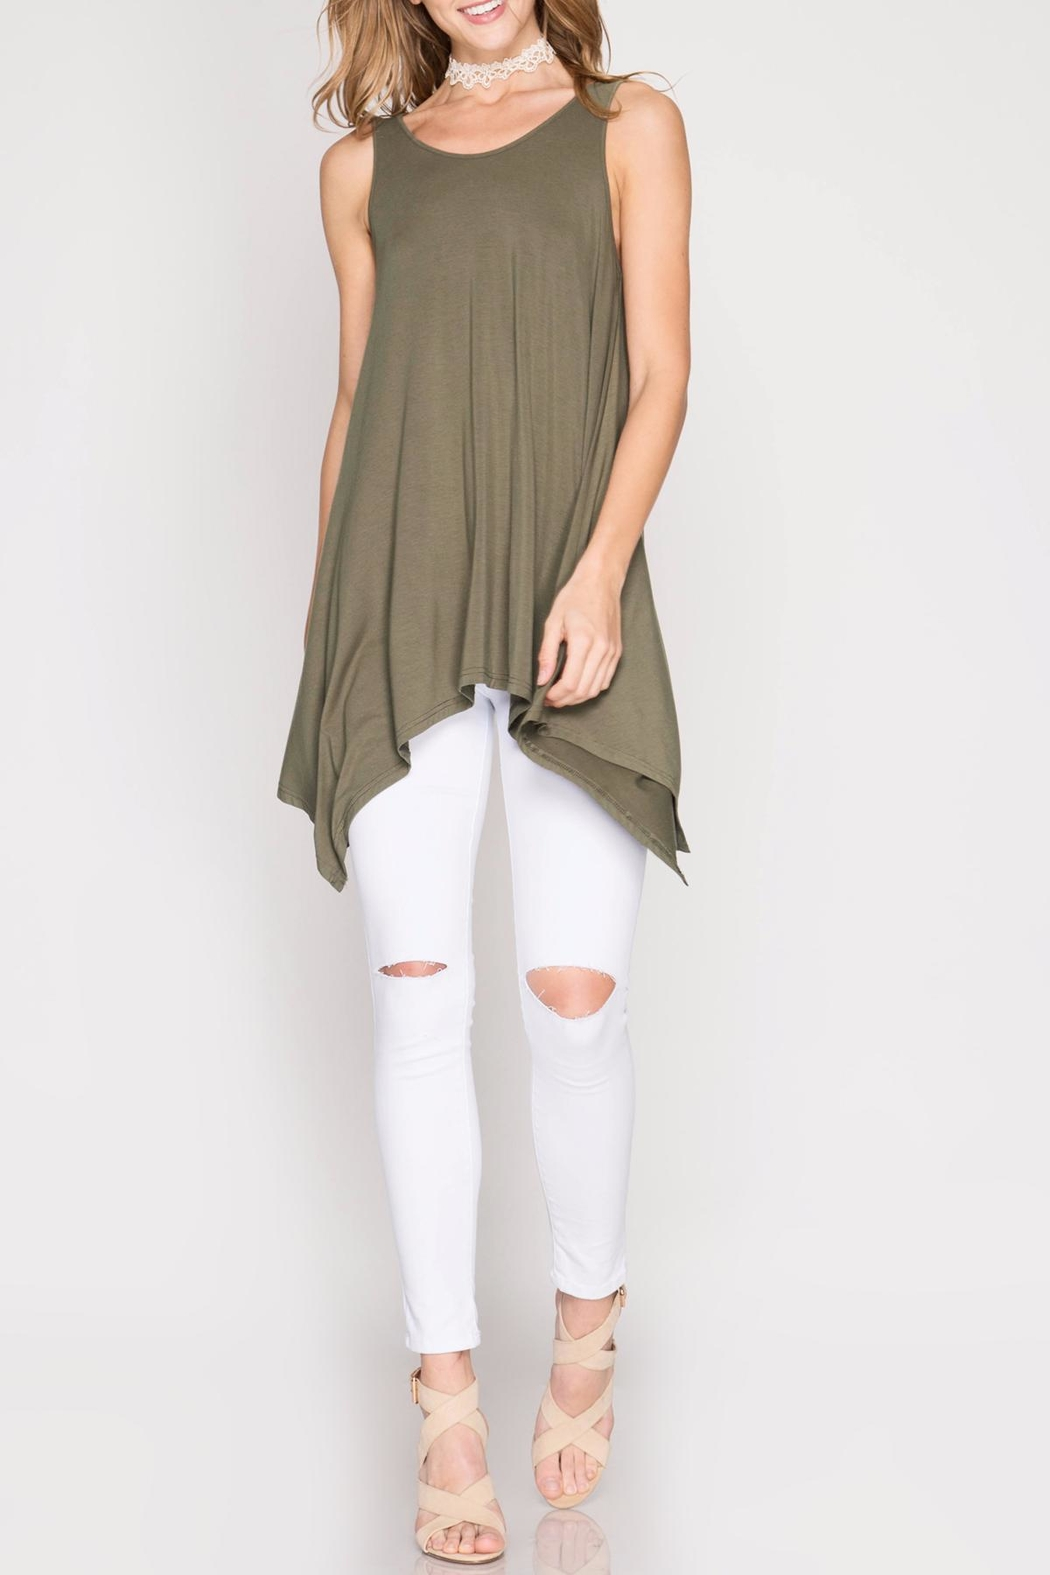 She + Sky Olive Tunic Top - Front Full Image